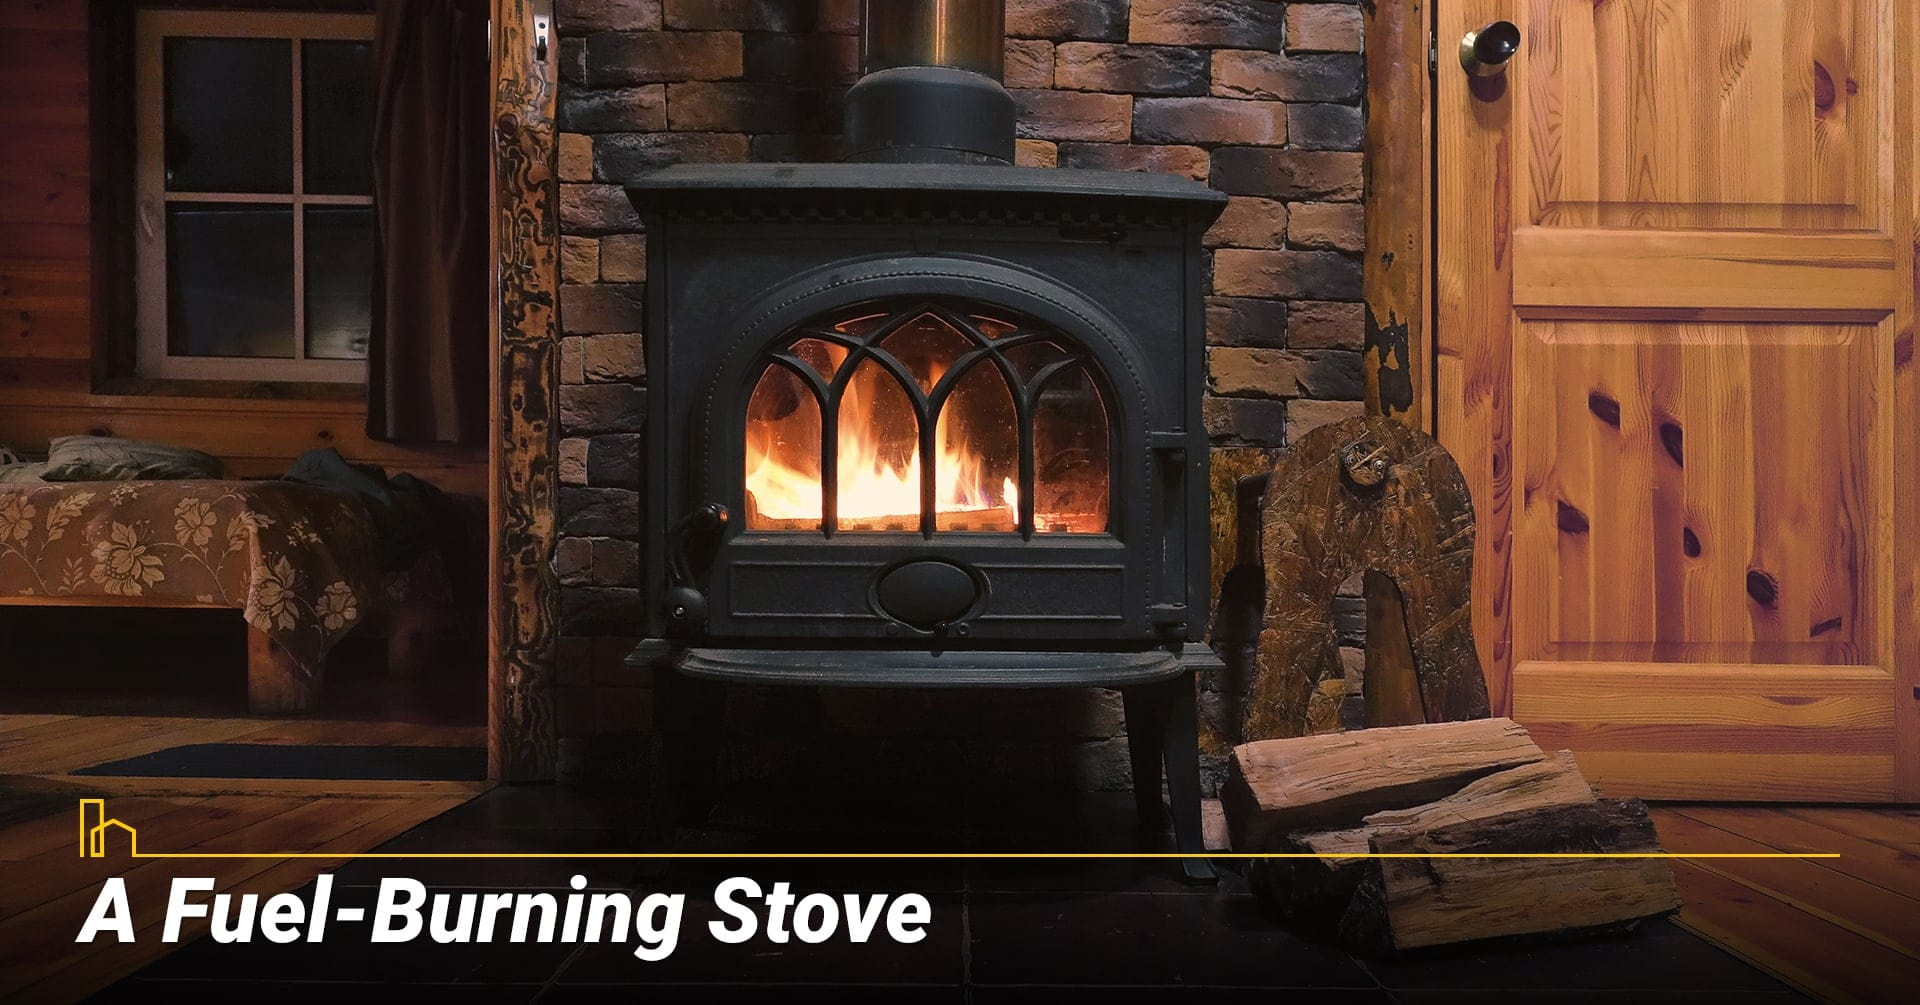 A Fuel-Burning Stove, heat your home with wood-burning stove